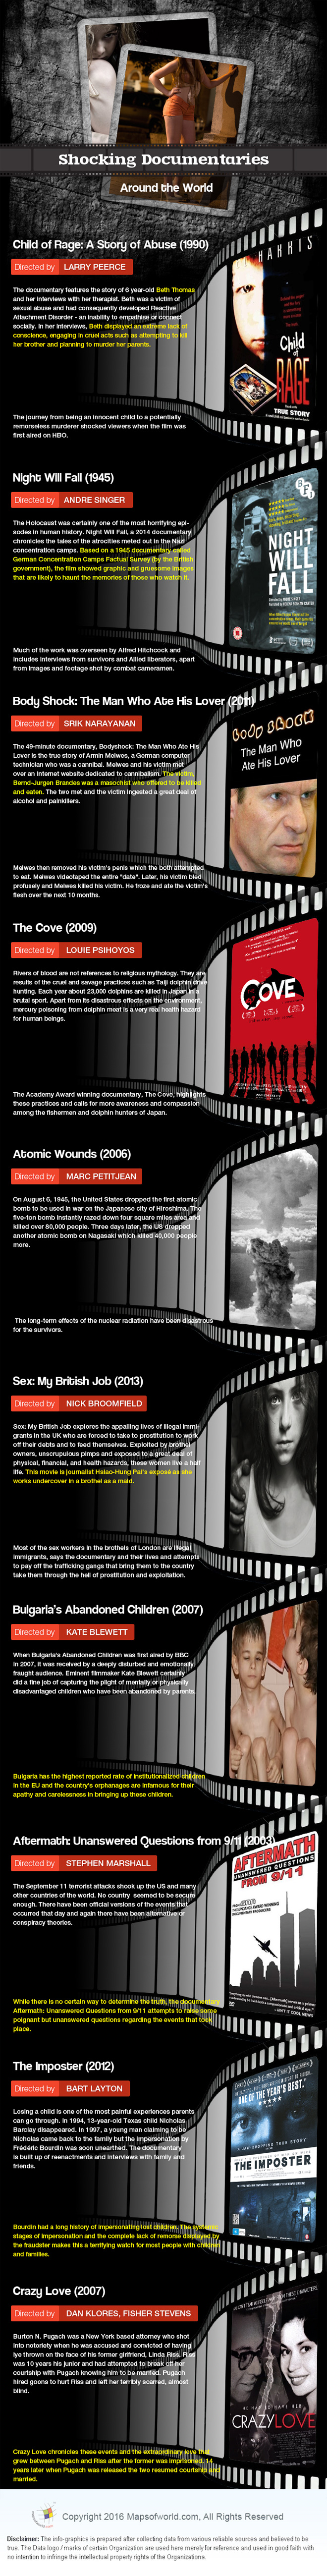 Infographic on Just Shocking Documentaries